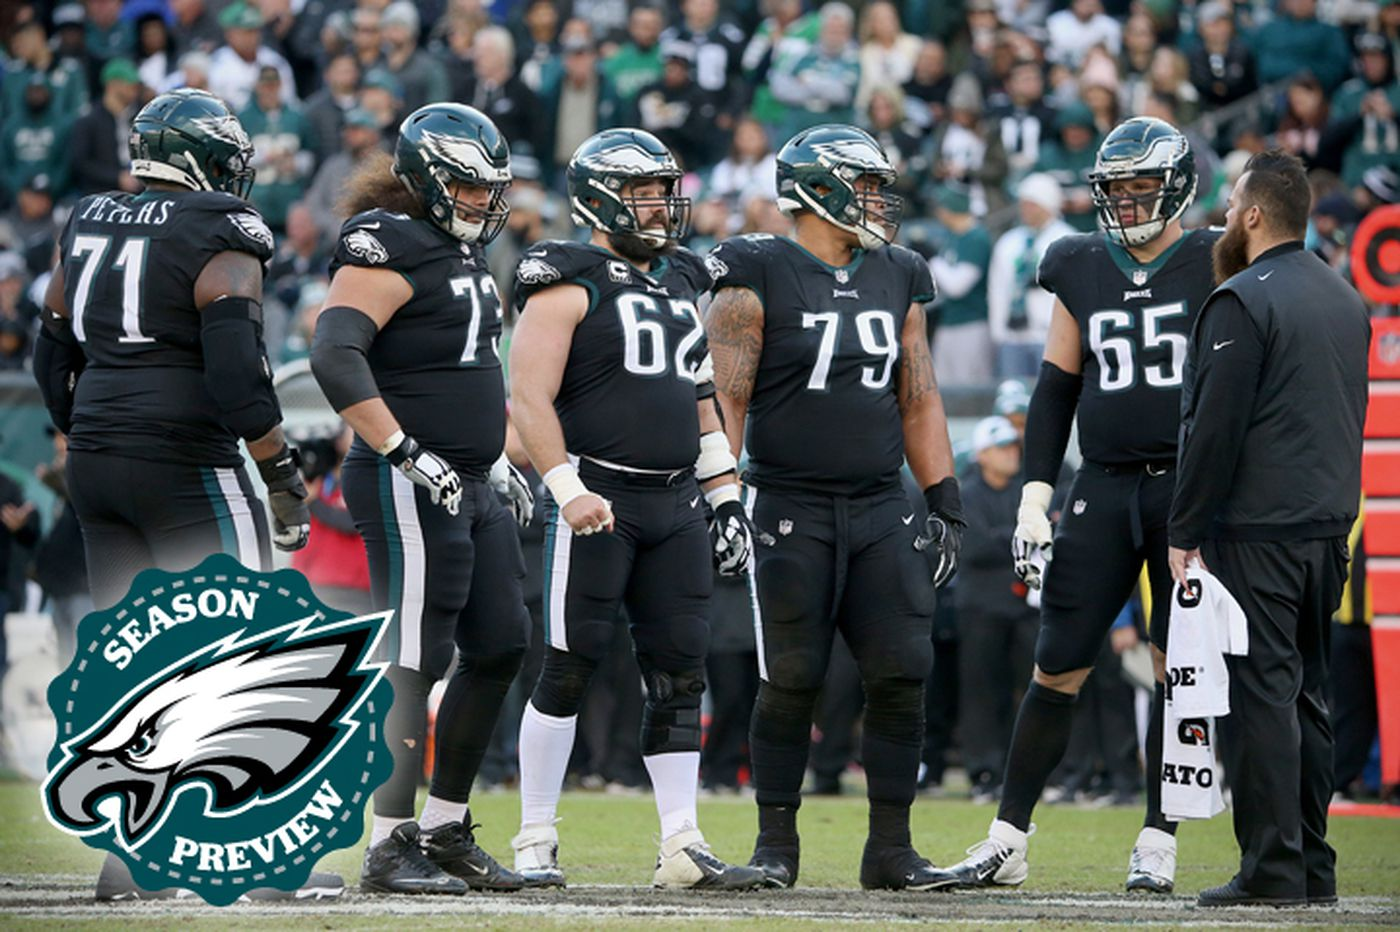 The Eagles offensive line may be elite, but it's behind schedule — just like last year | Marcus Hayes